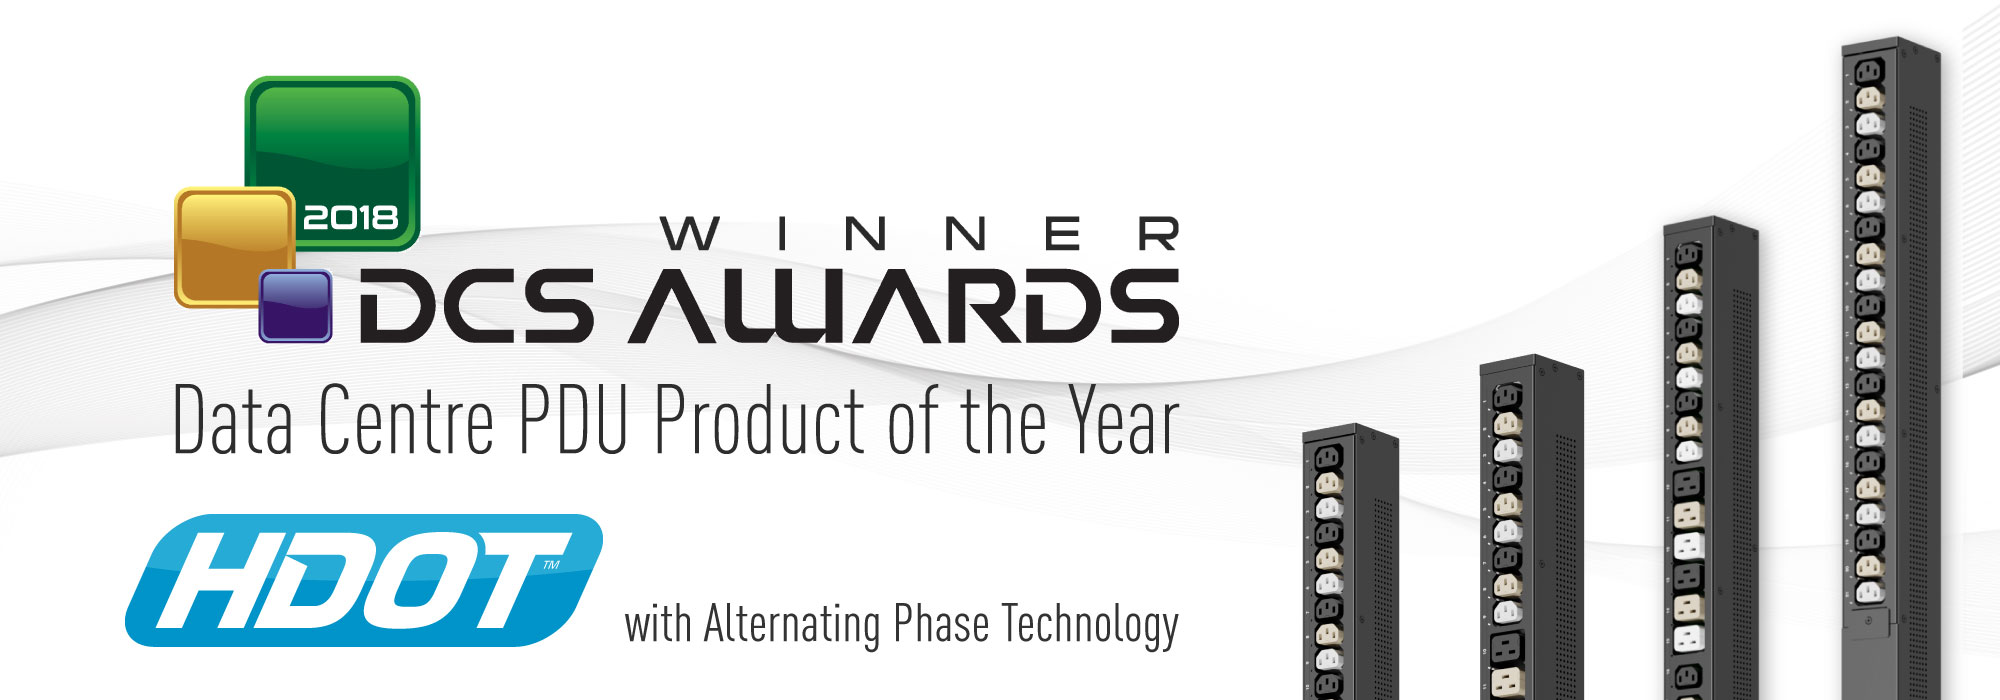 DCS Awards 2018 PDU Product of the Year